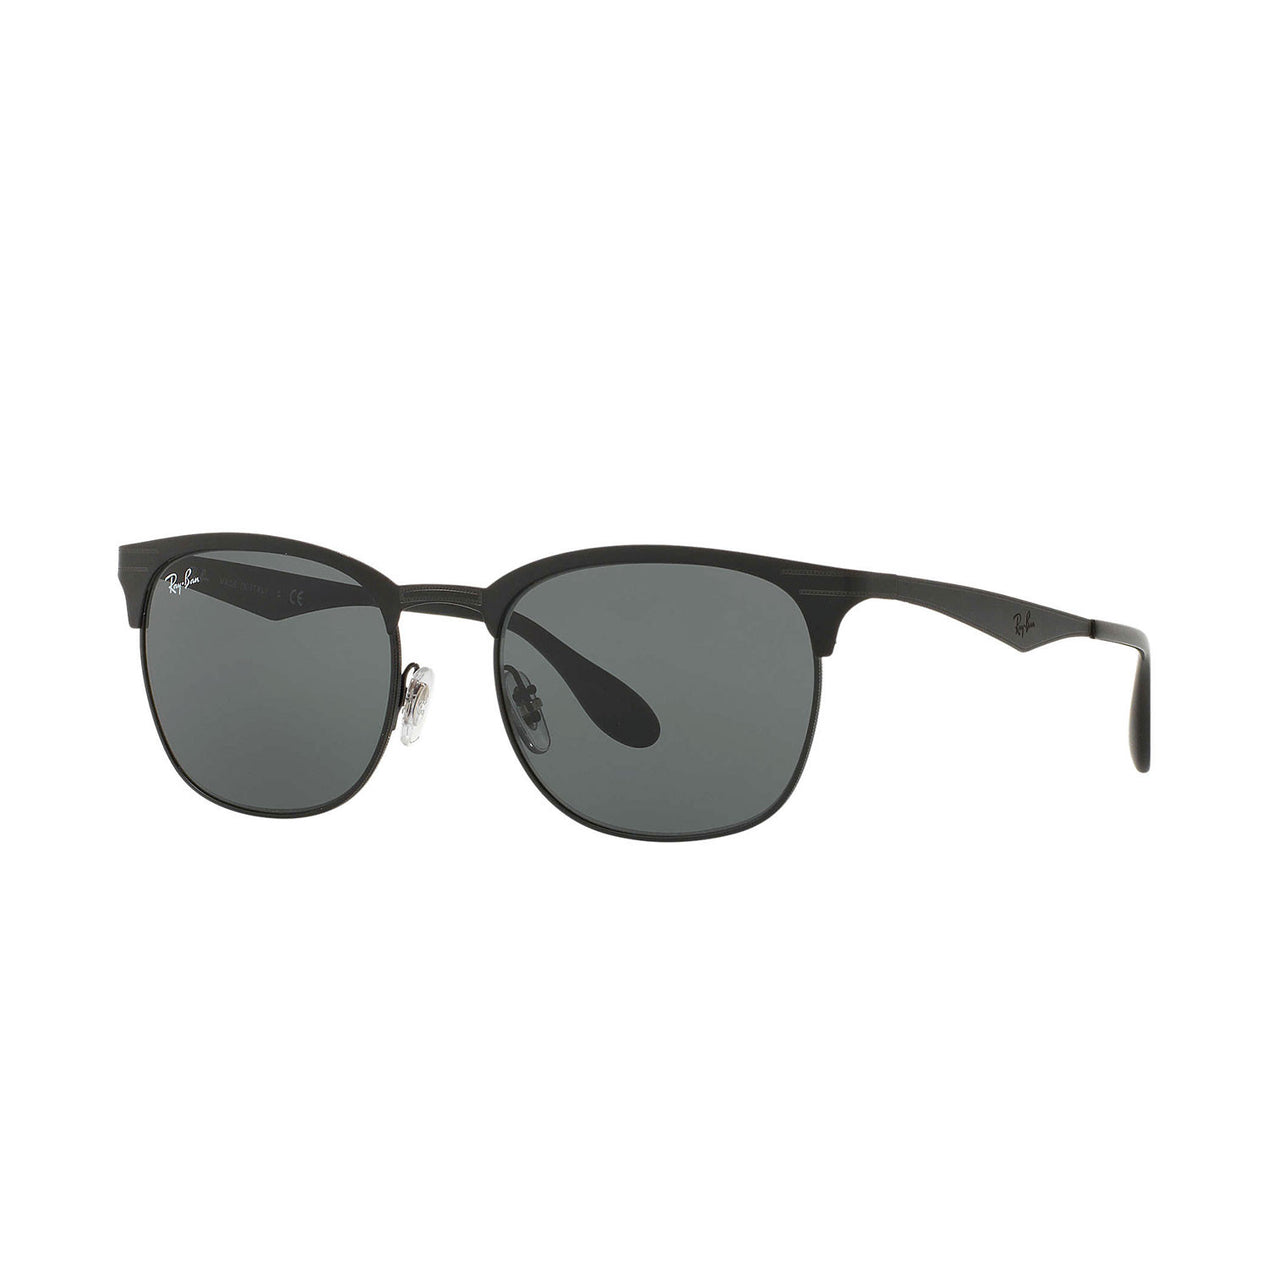 5048b71fe8 Ray-Ban RB3538 - Black Frame - Green Classic Lens